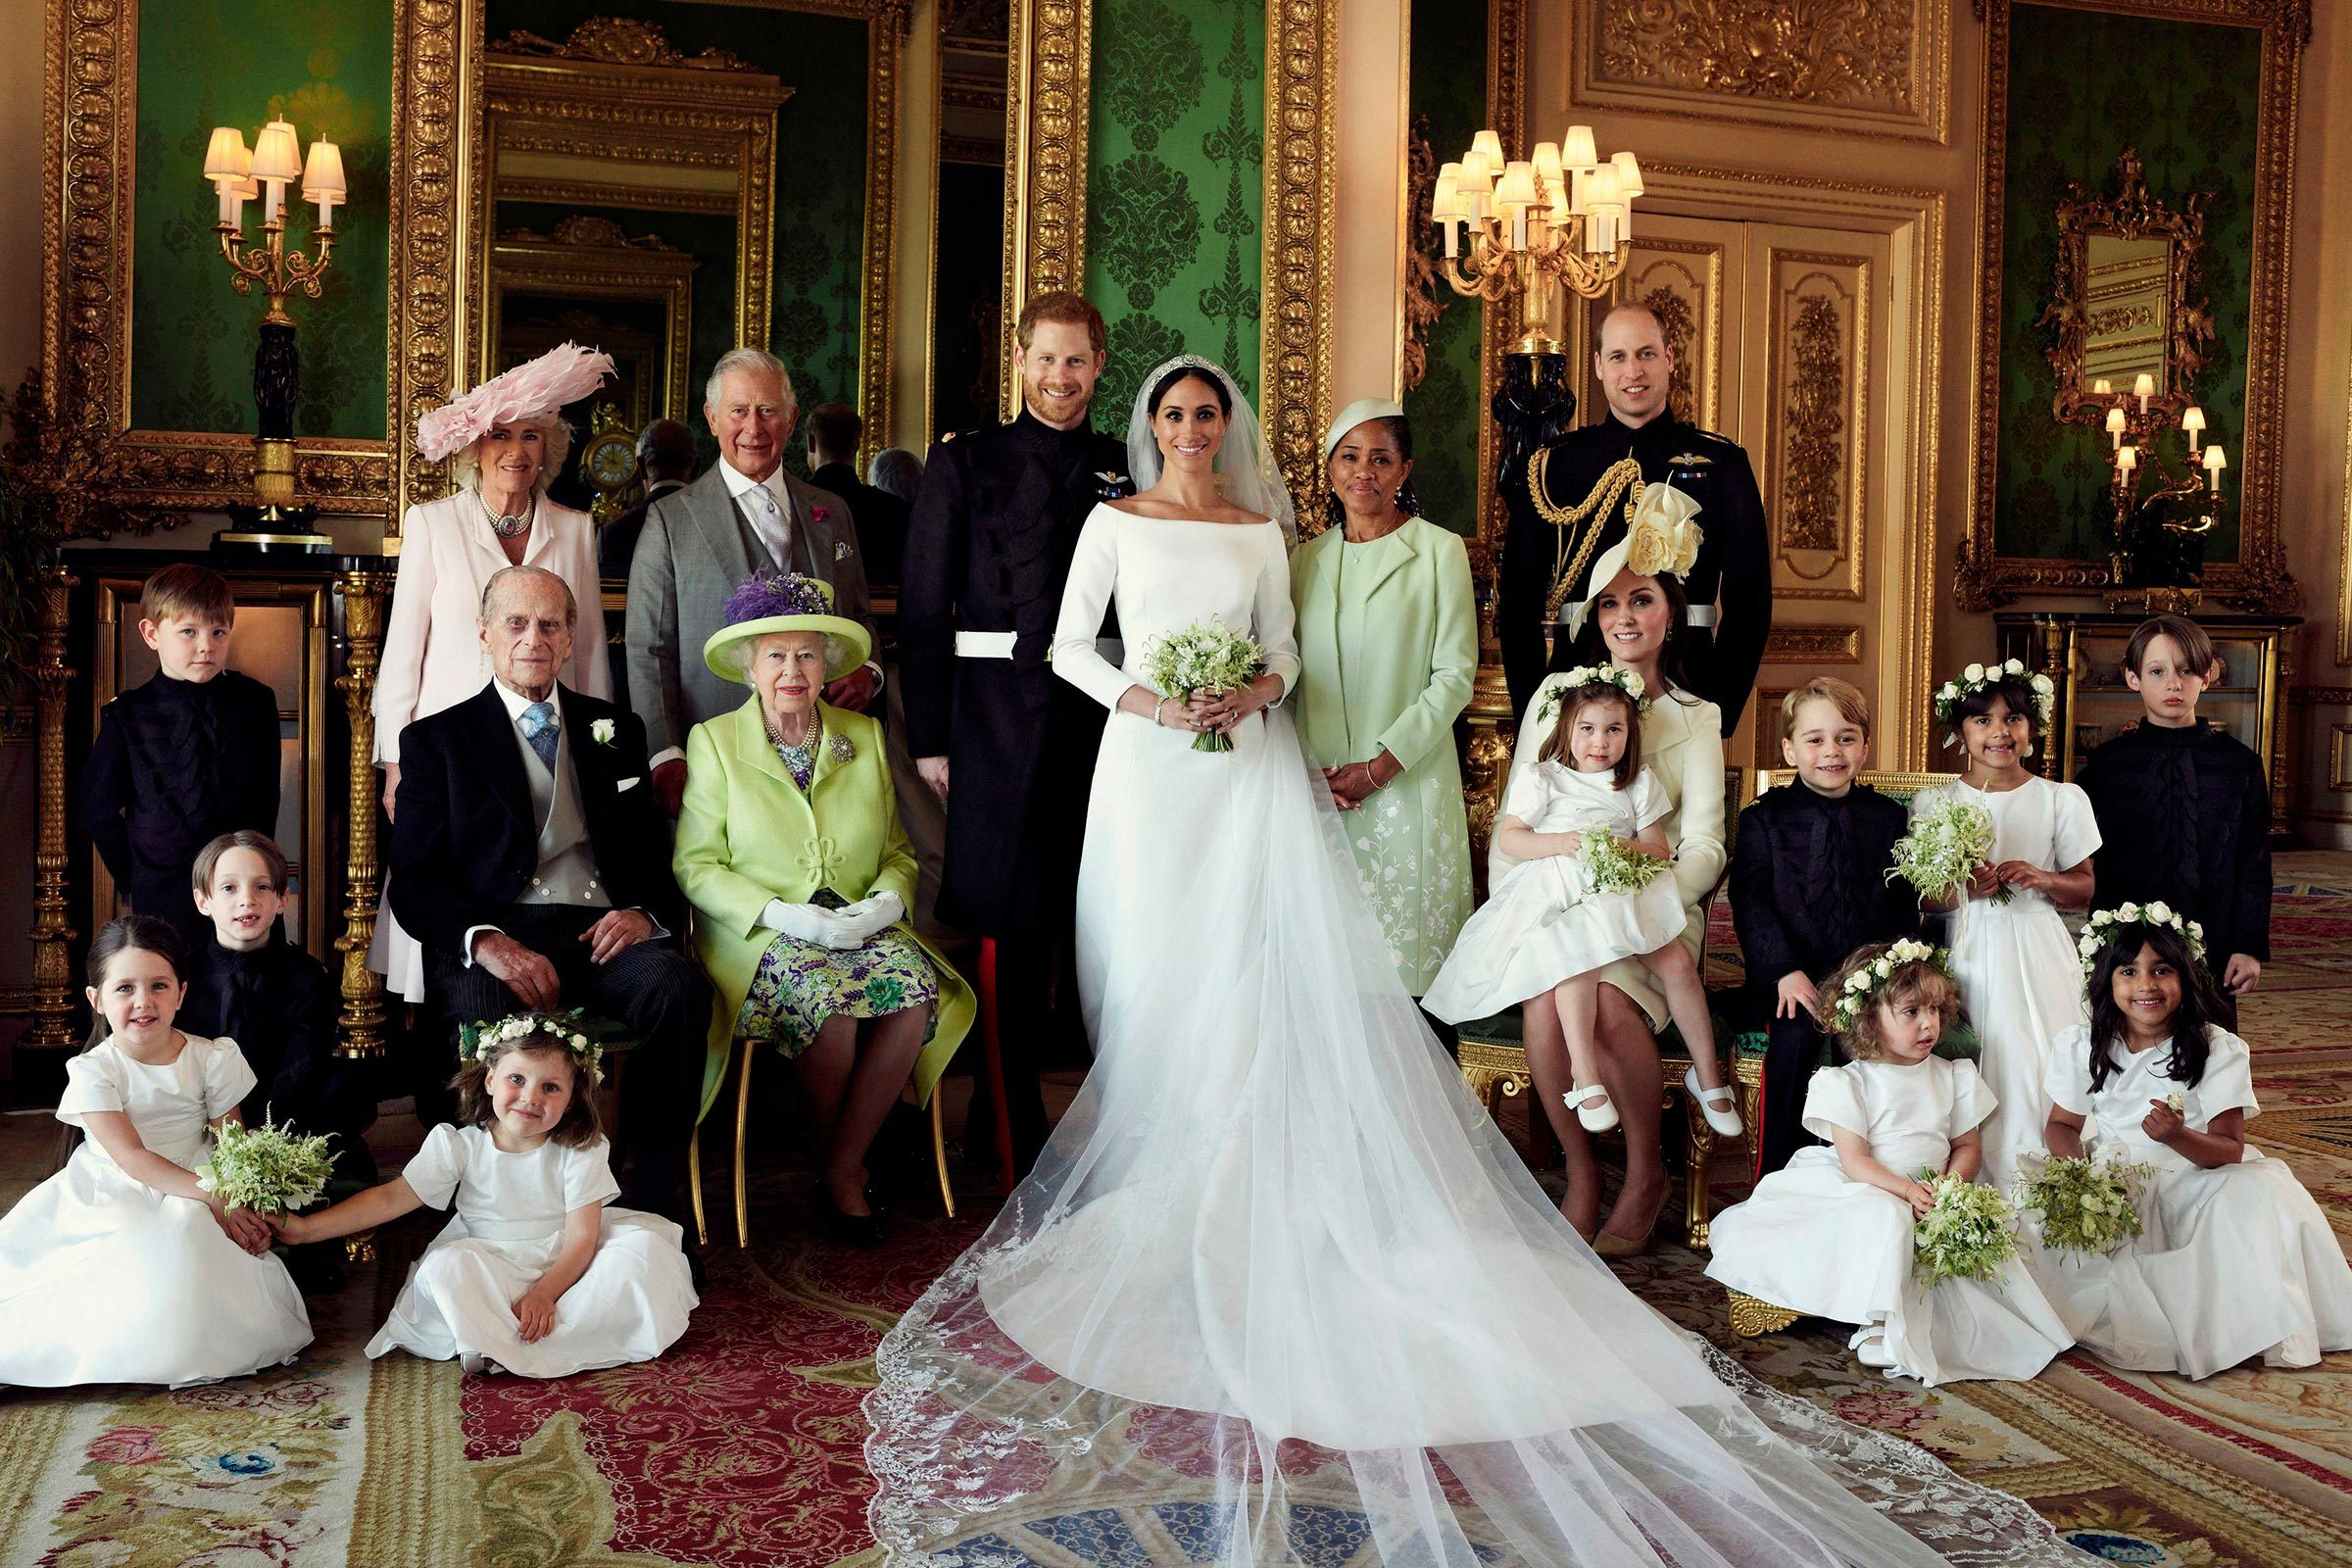 Details You Never Noticed About Meghan Markle's Wedding Dress